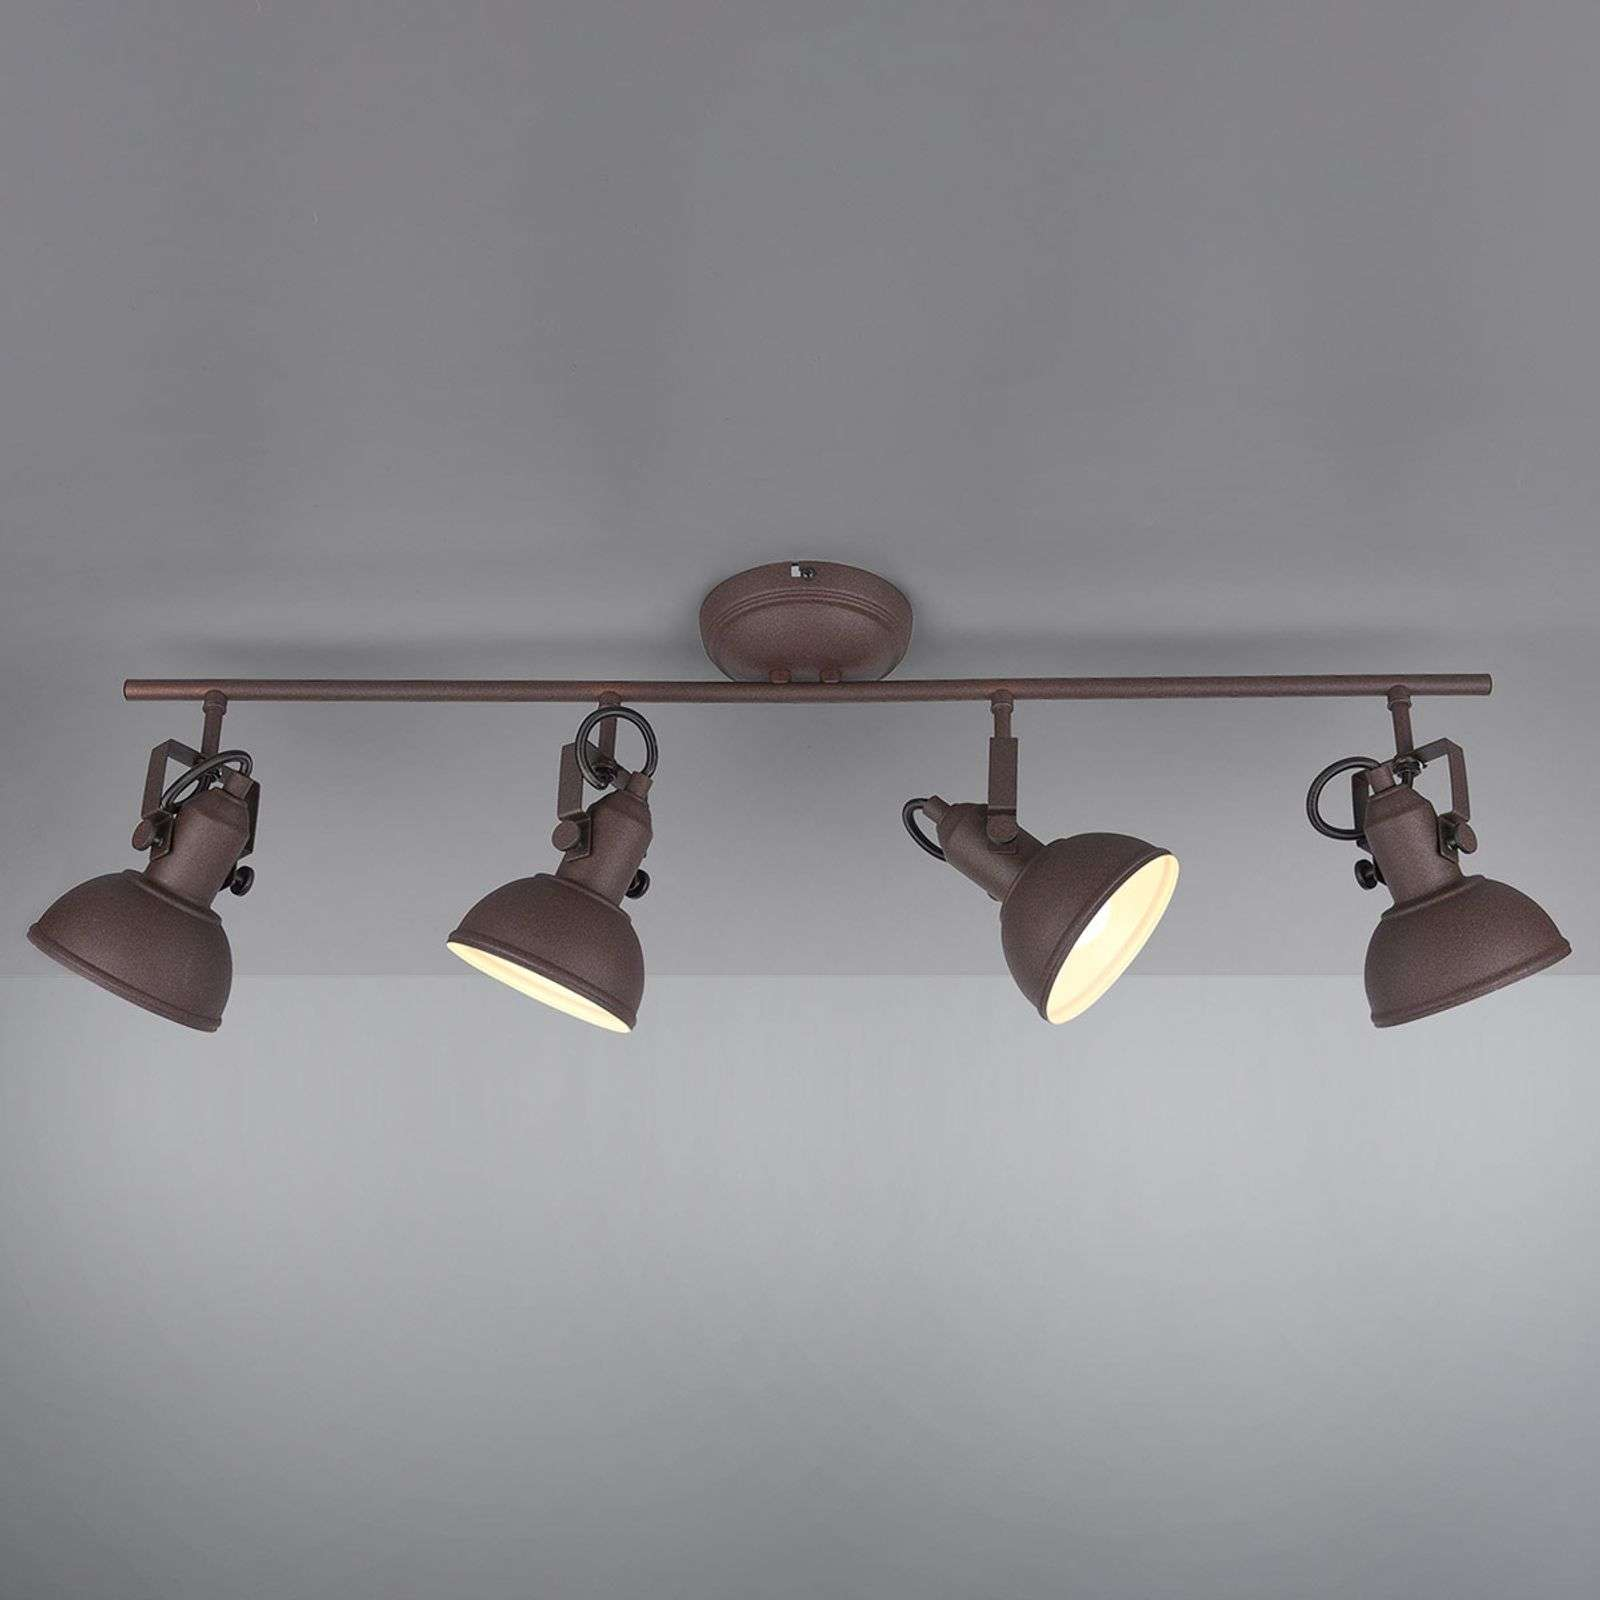 Plafonnier Gina, brun rouille, 4 lampes